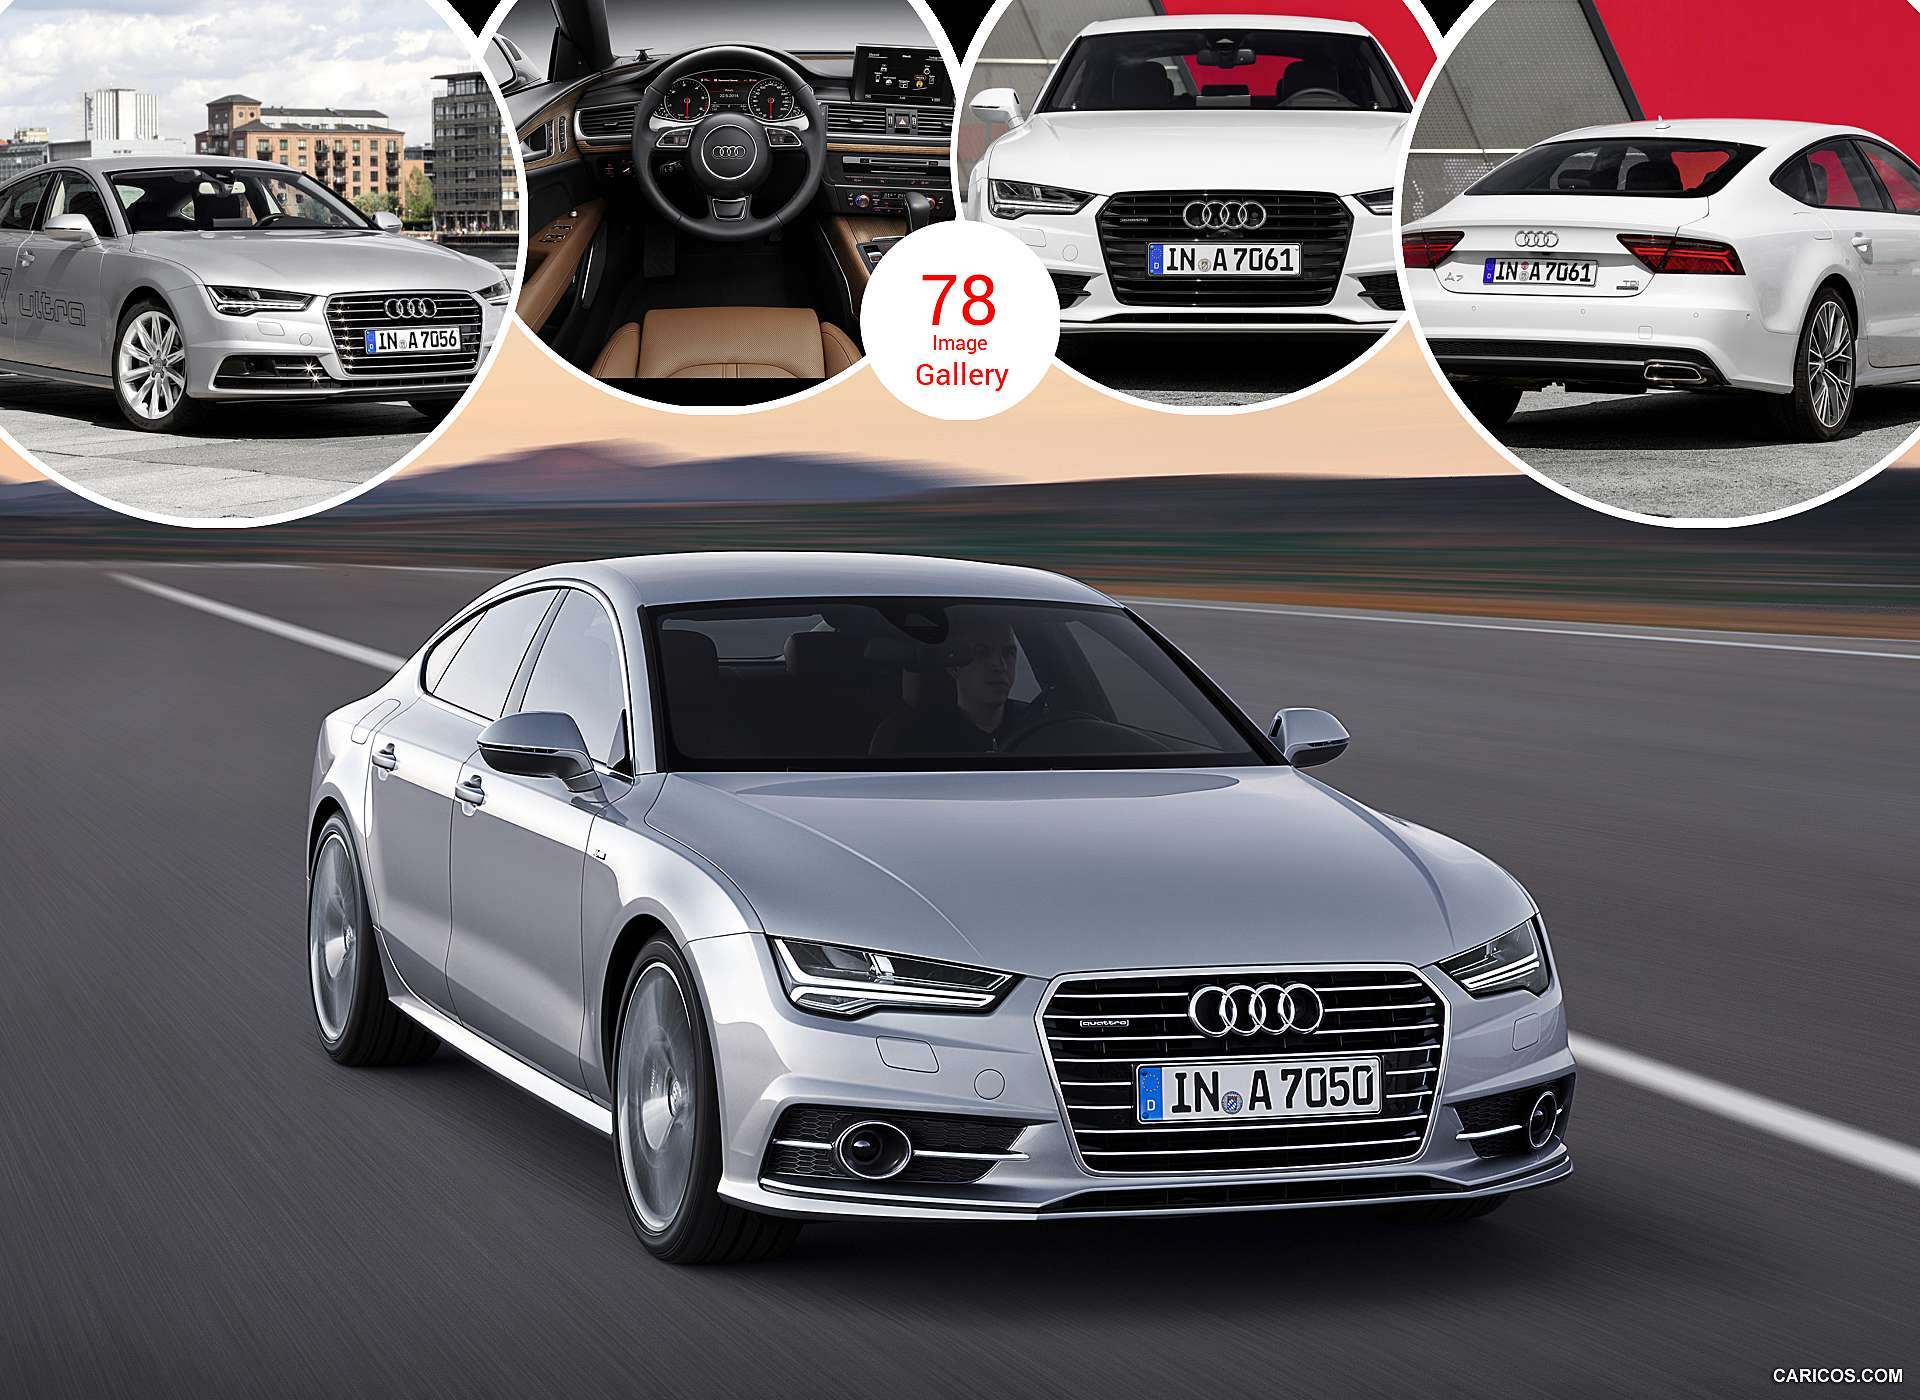 2015 audi a7 sportback. Black Bedroom Furniture Sets. Home Design Ideas